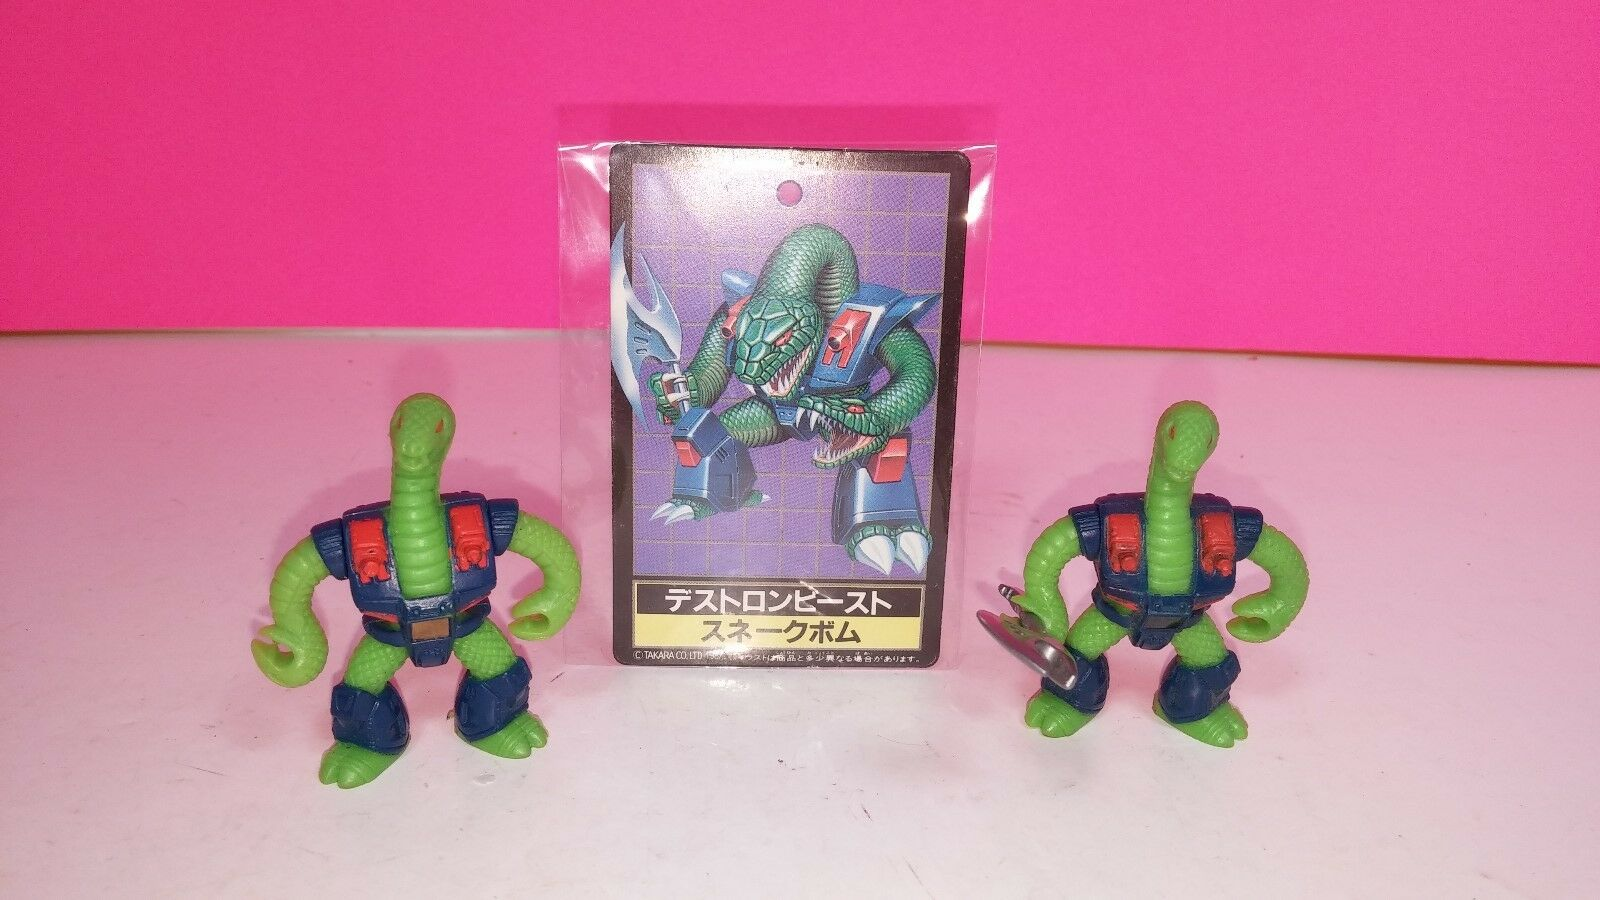 Takara Battle Beasts Triple Threat Snake Vintage Action Figure Lot with Card